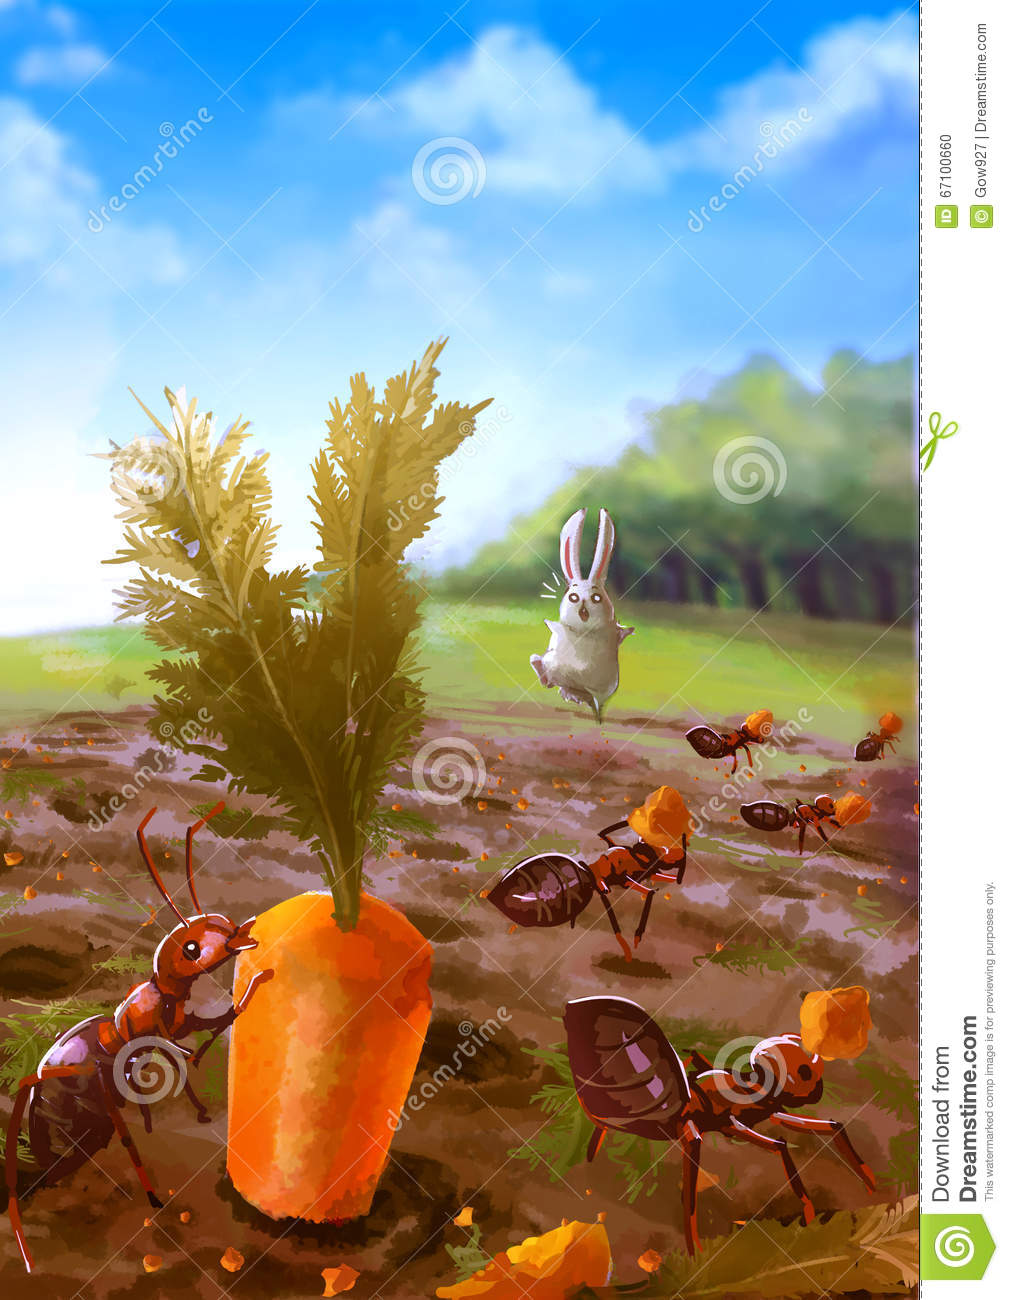 Gardening Group: Cartoon Illustration Of Group Of Red Ants Eating Carrot